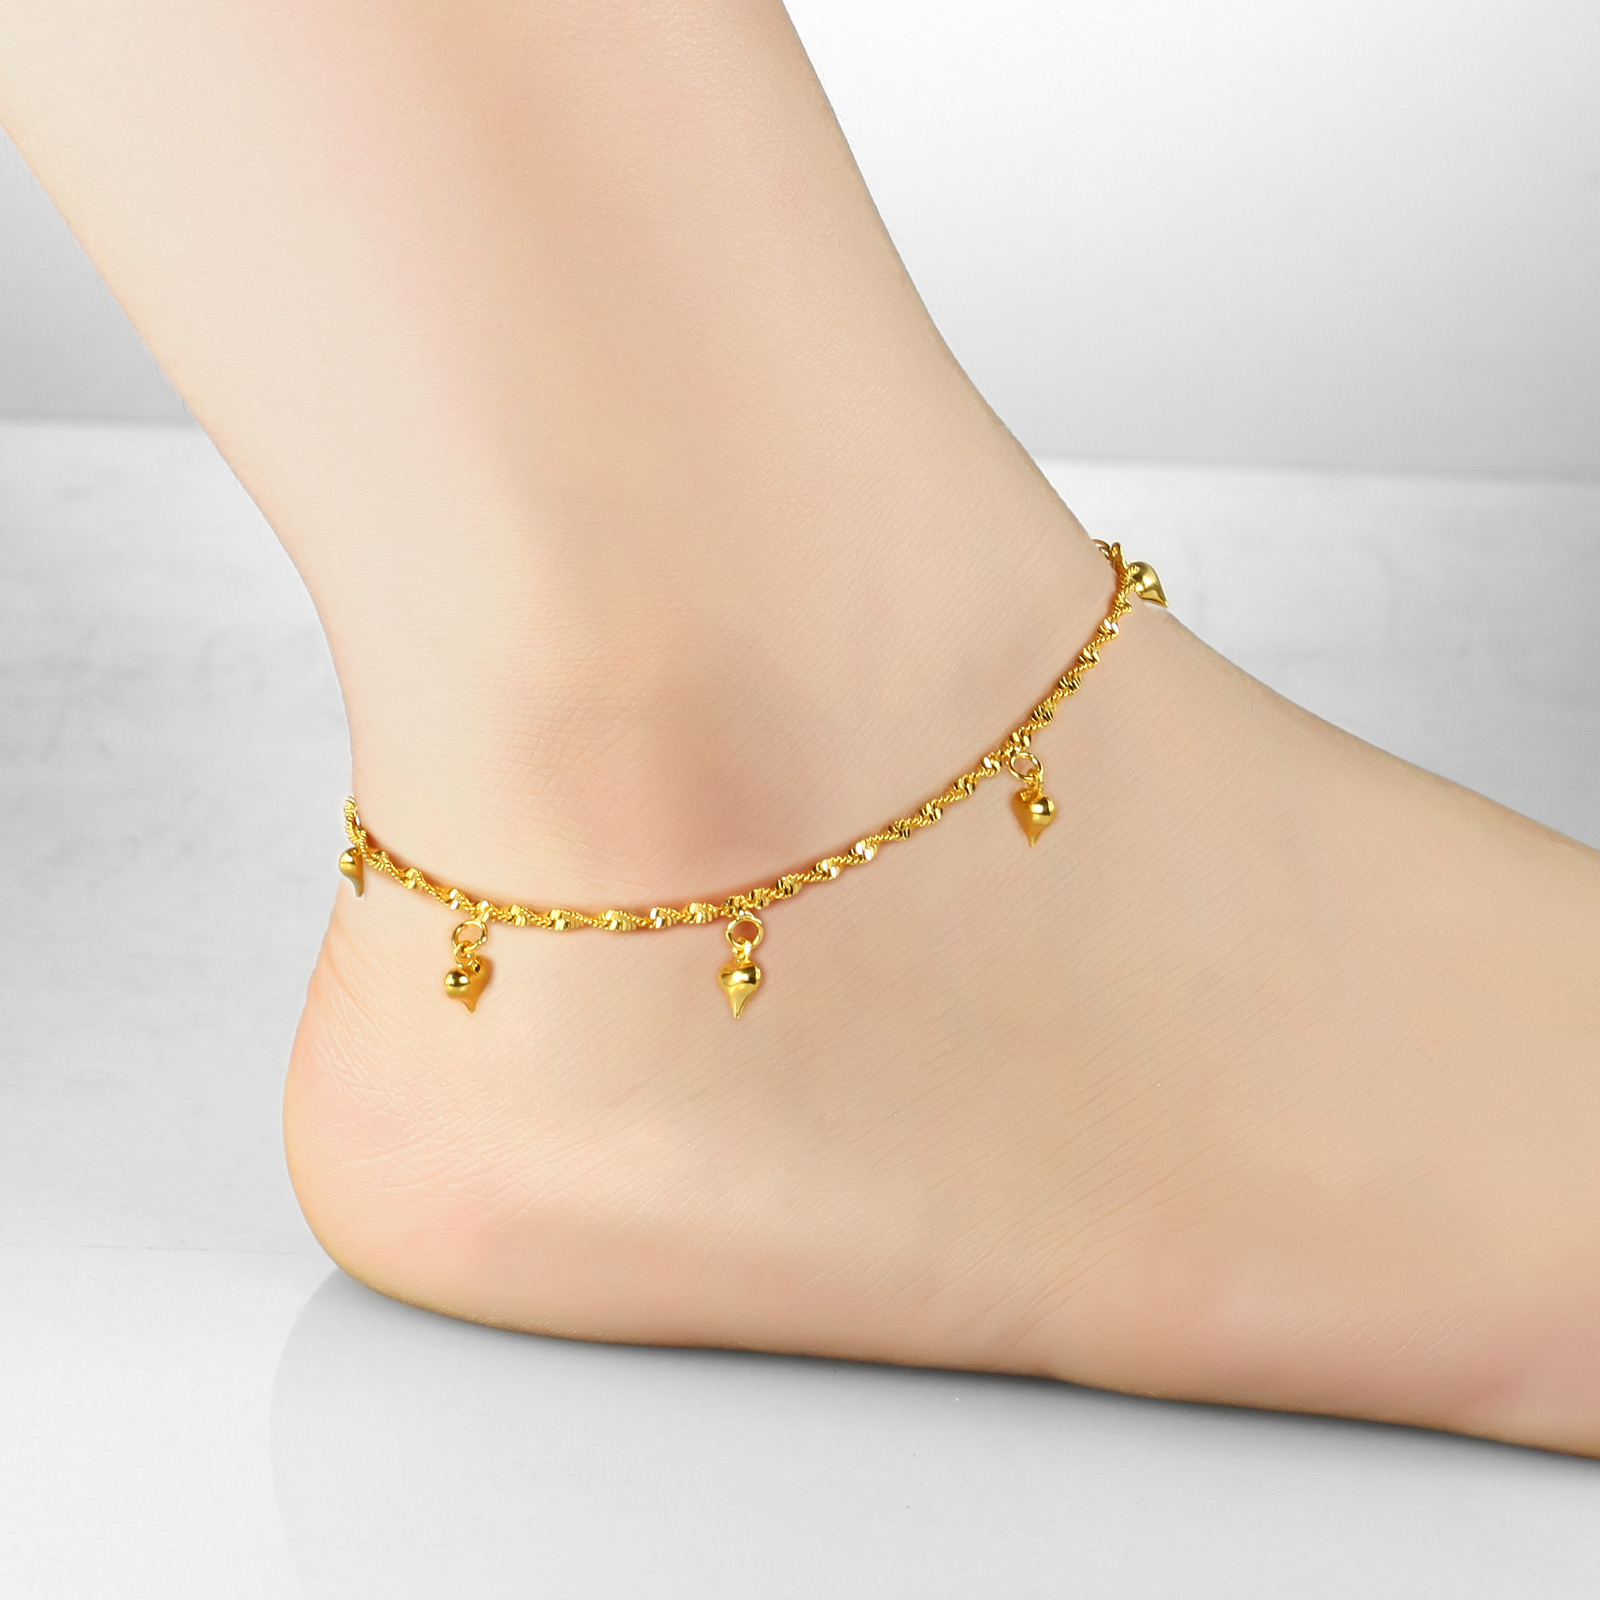 occasion online designer malabar for women diamonds gifts wedding anklet buy mhaaaaabbedw gold